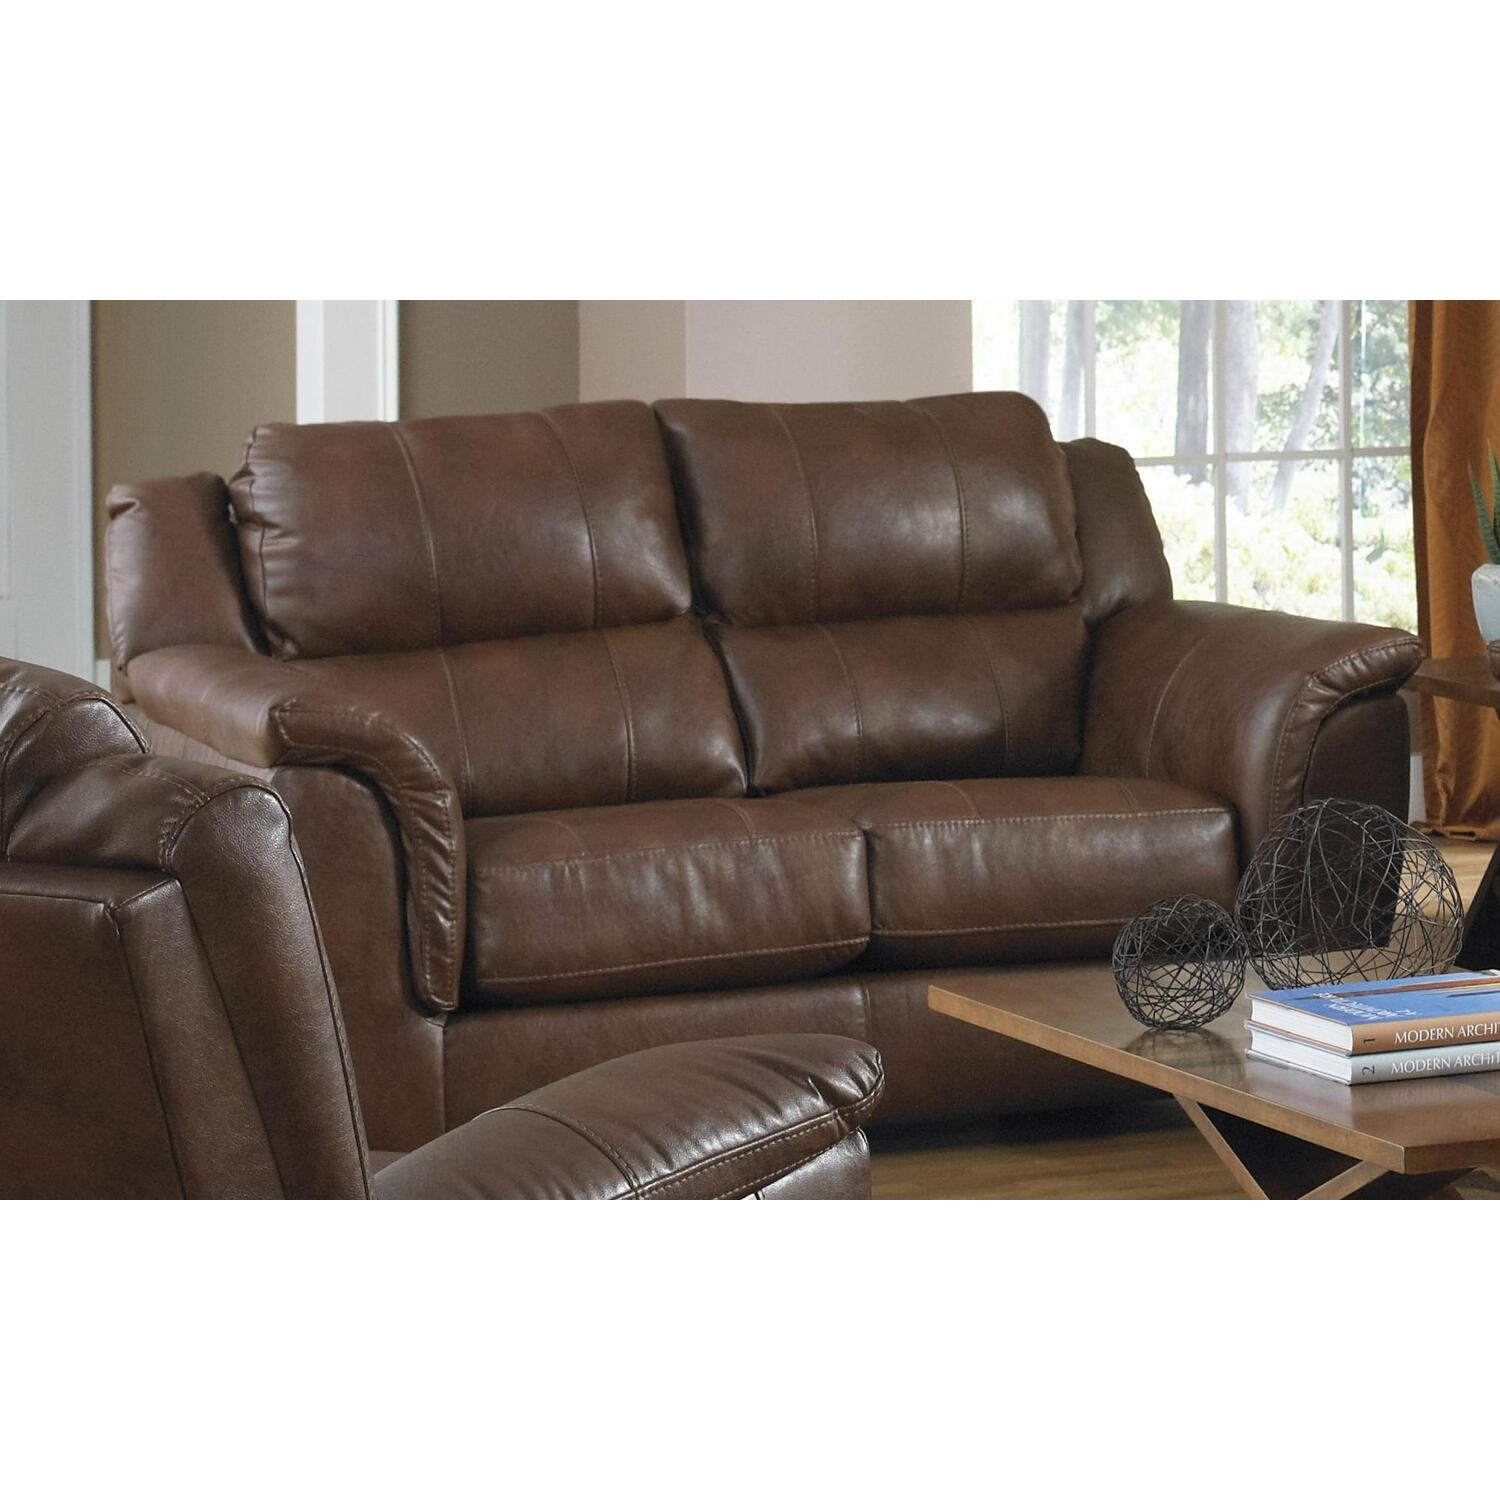 verona leather sofa reviews beds perth scotland jackson furniture loveseat by oj commerce